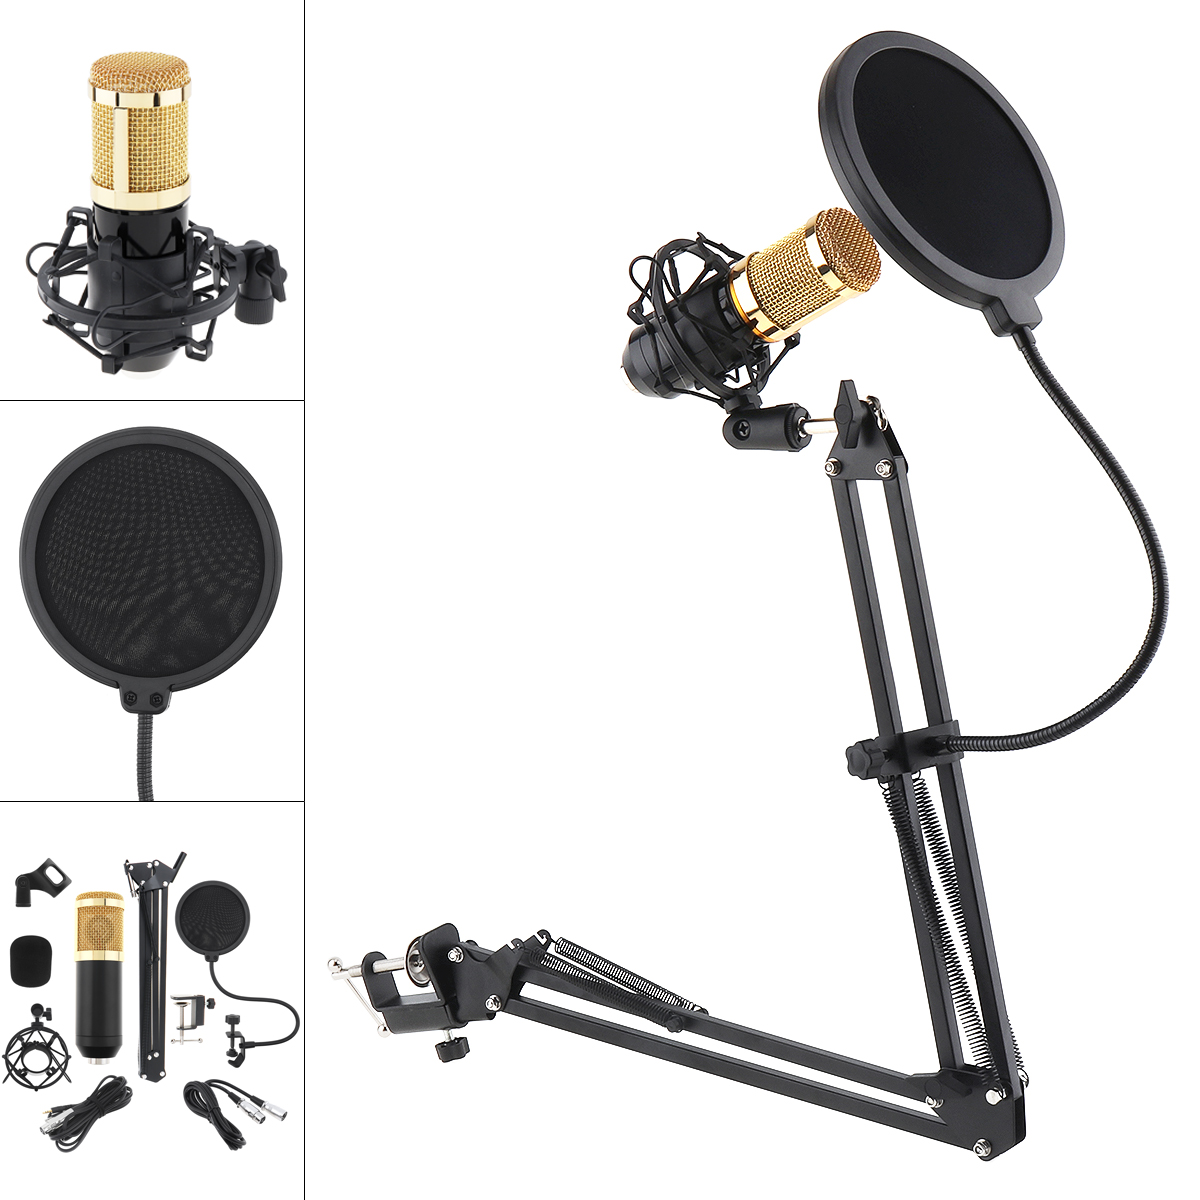 BM 800 Karaoke Professional Condenser Hanging Microphone With Stand Arm And Pop Filter Fit For Computer/Wired Studio/Live